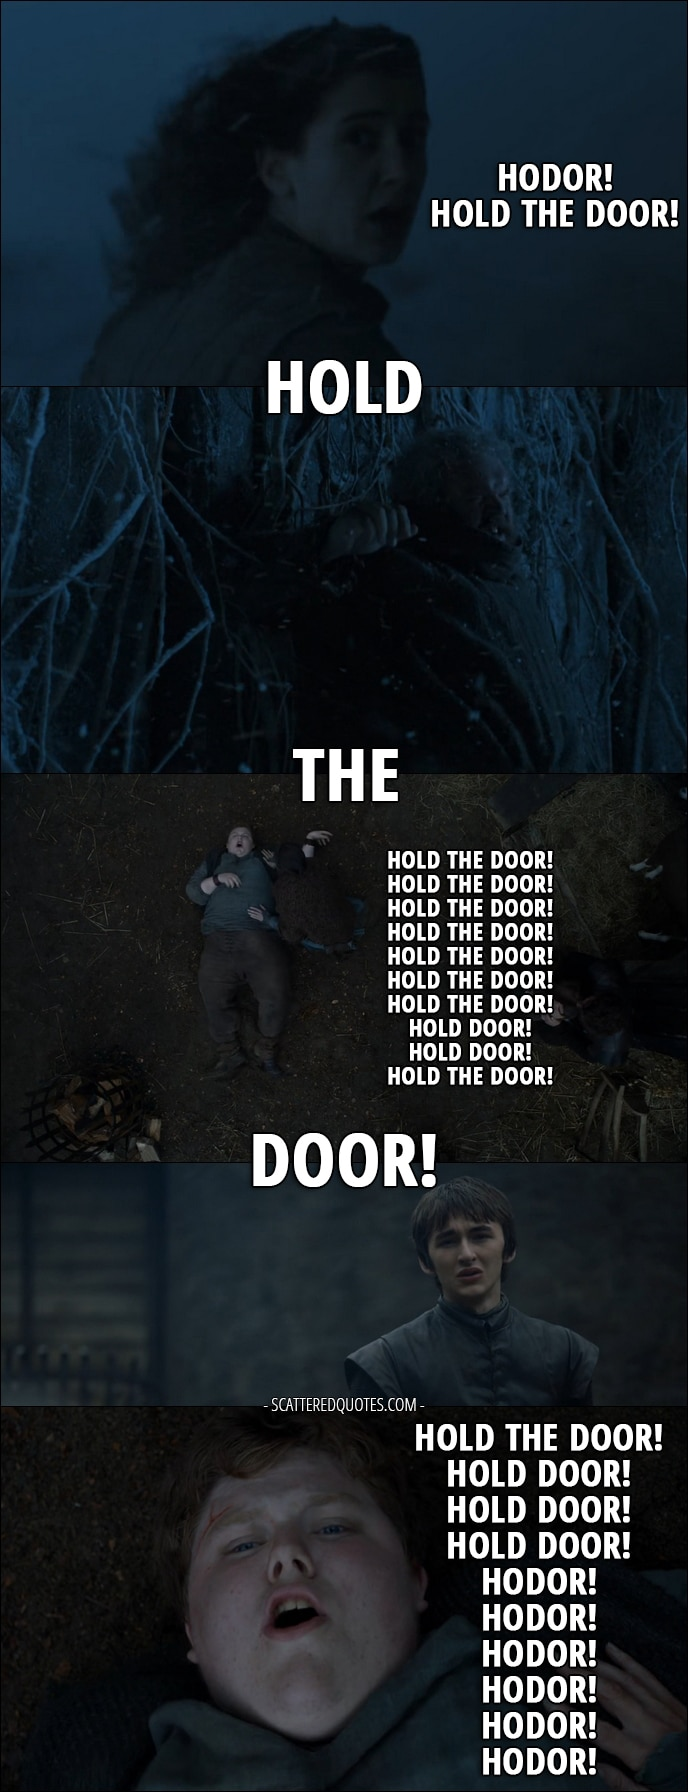 Quote from Game of Thrones 6x05 - Meera Reed: Hodor, hurry! Hodor! Hold the door! Hold the door! Hold the door! Hold the door! Hold the door! Hold the door! Old Nan: Wylis! What's the matter? Meera Reed: Hold the door! Old Nan: Come on, son. Meera Reed: Hold the door! Hodor: Hold the door! Hold the door! Hold the door! Hold the door! Hold the door! Hold the door! Hold the door! Hold the door! Hold the door! Hold the door! Hold the door! Hold the door! Hold the door! Hold the door! Hold the door! Hold door! Hold door! Hold the door! Hold the door! Hold door! Hold door! Hold door! Hodor! Hodor! Hodor! Hodor! Hodor! Hodor!